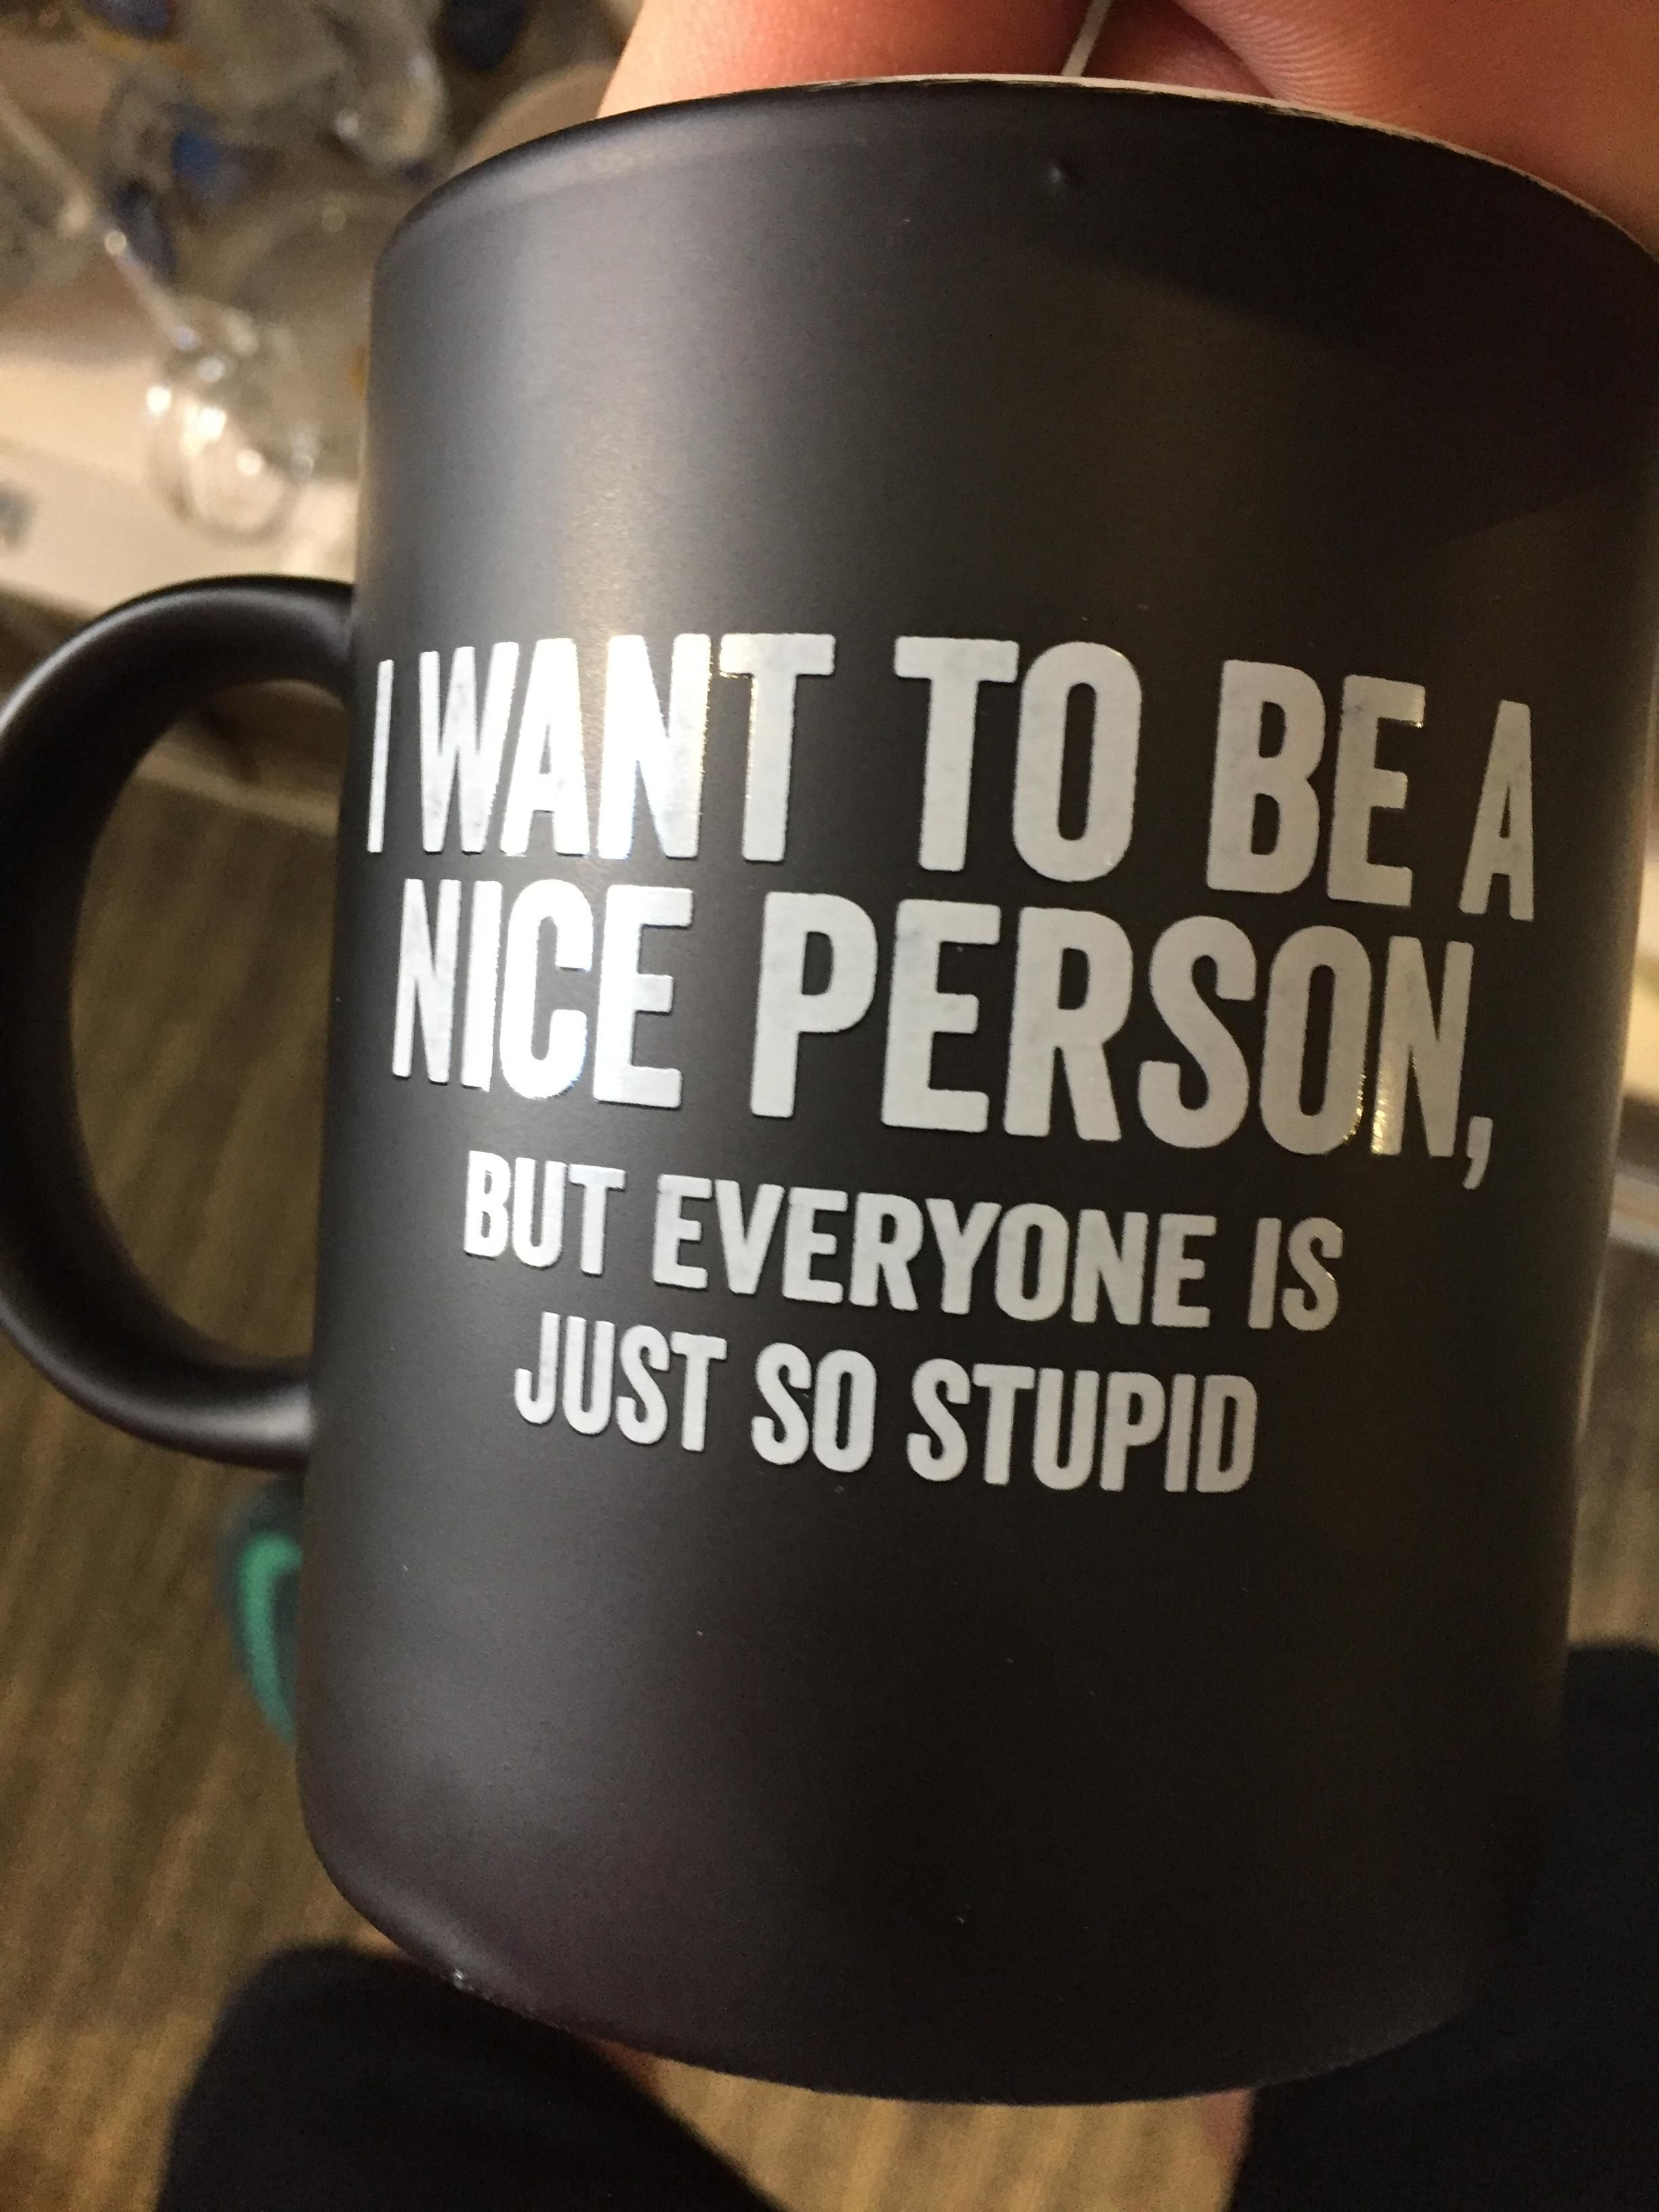 My friend really wants this cup...